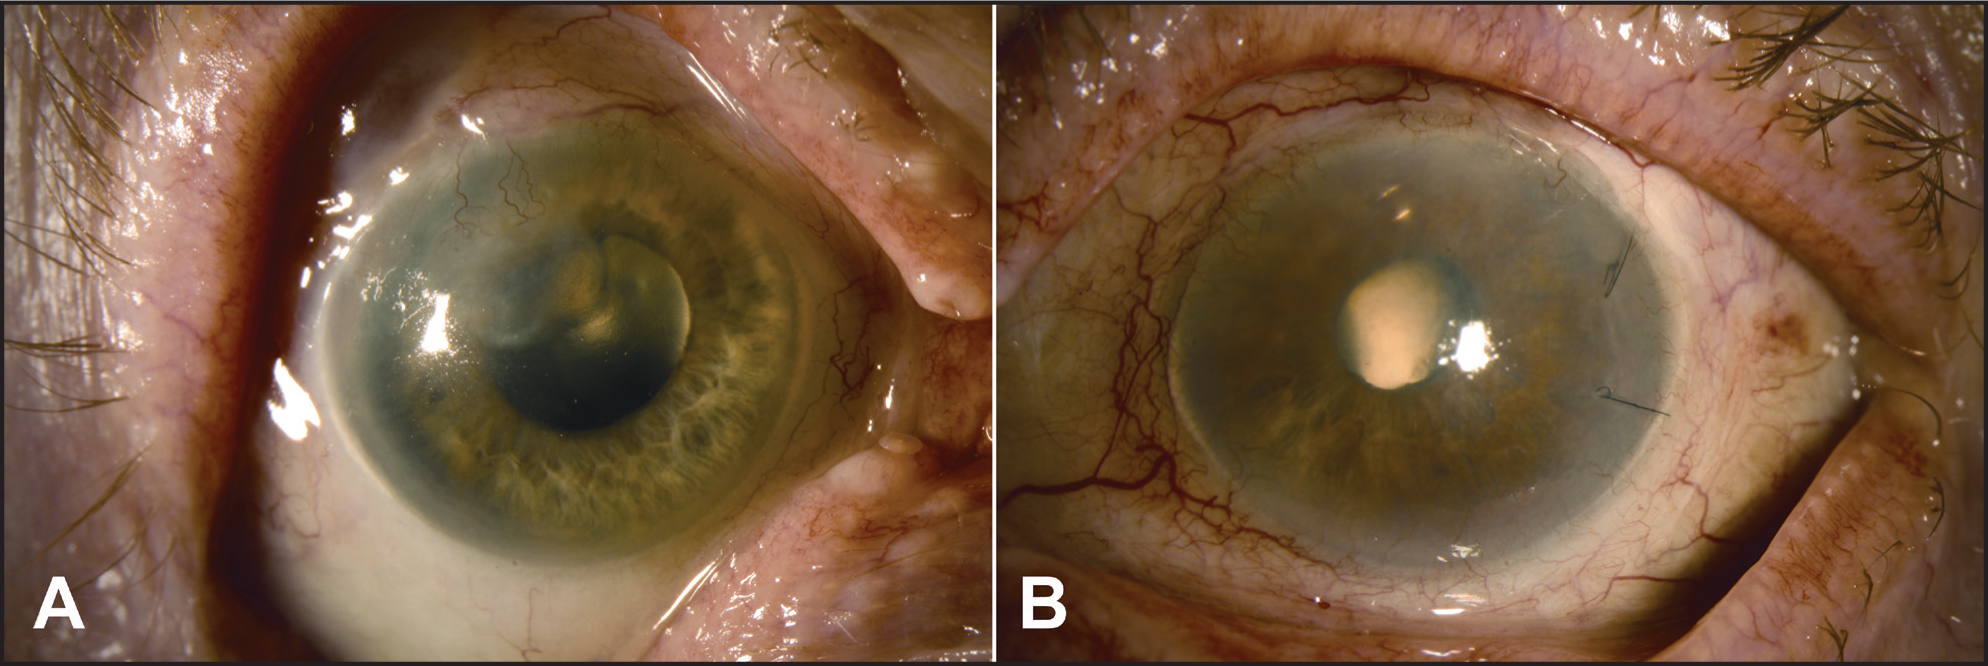 Two-month follow-up. (A) The corneal ulcer in the right eye has completely healed into a vascularized paracentral scar. (B) The left eye is quiet and void of any signs of inflammation or infection. Mild corneal haze and thickening persist.